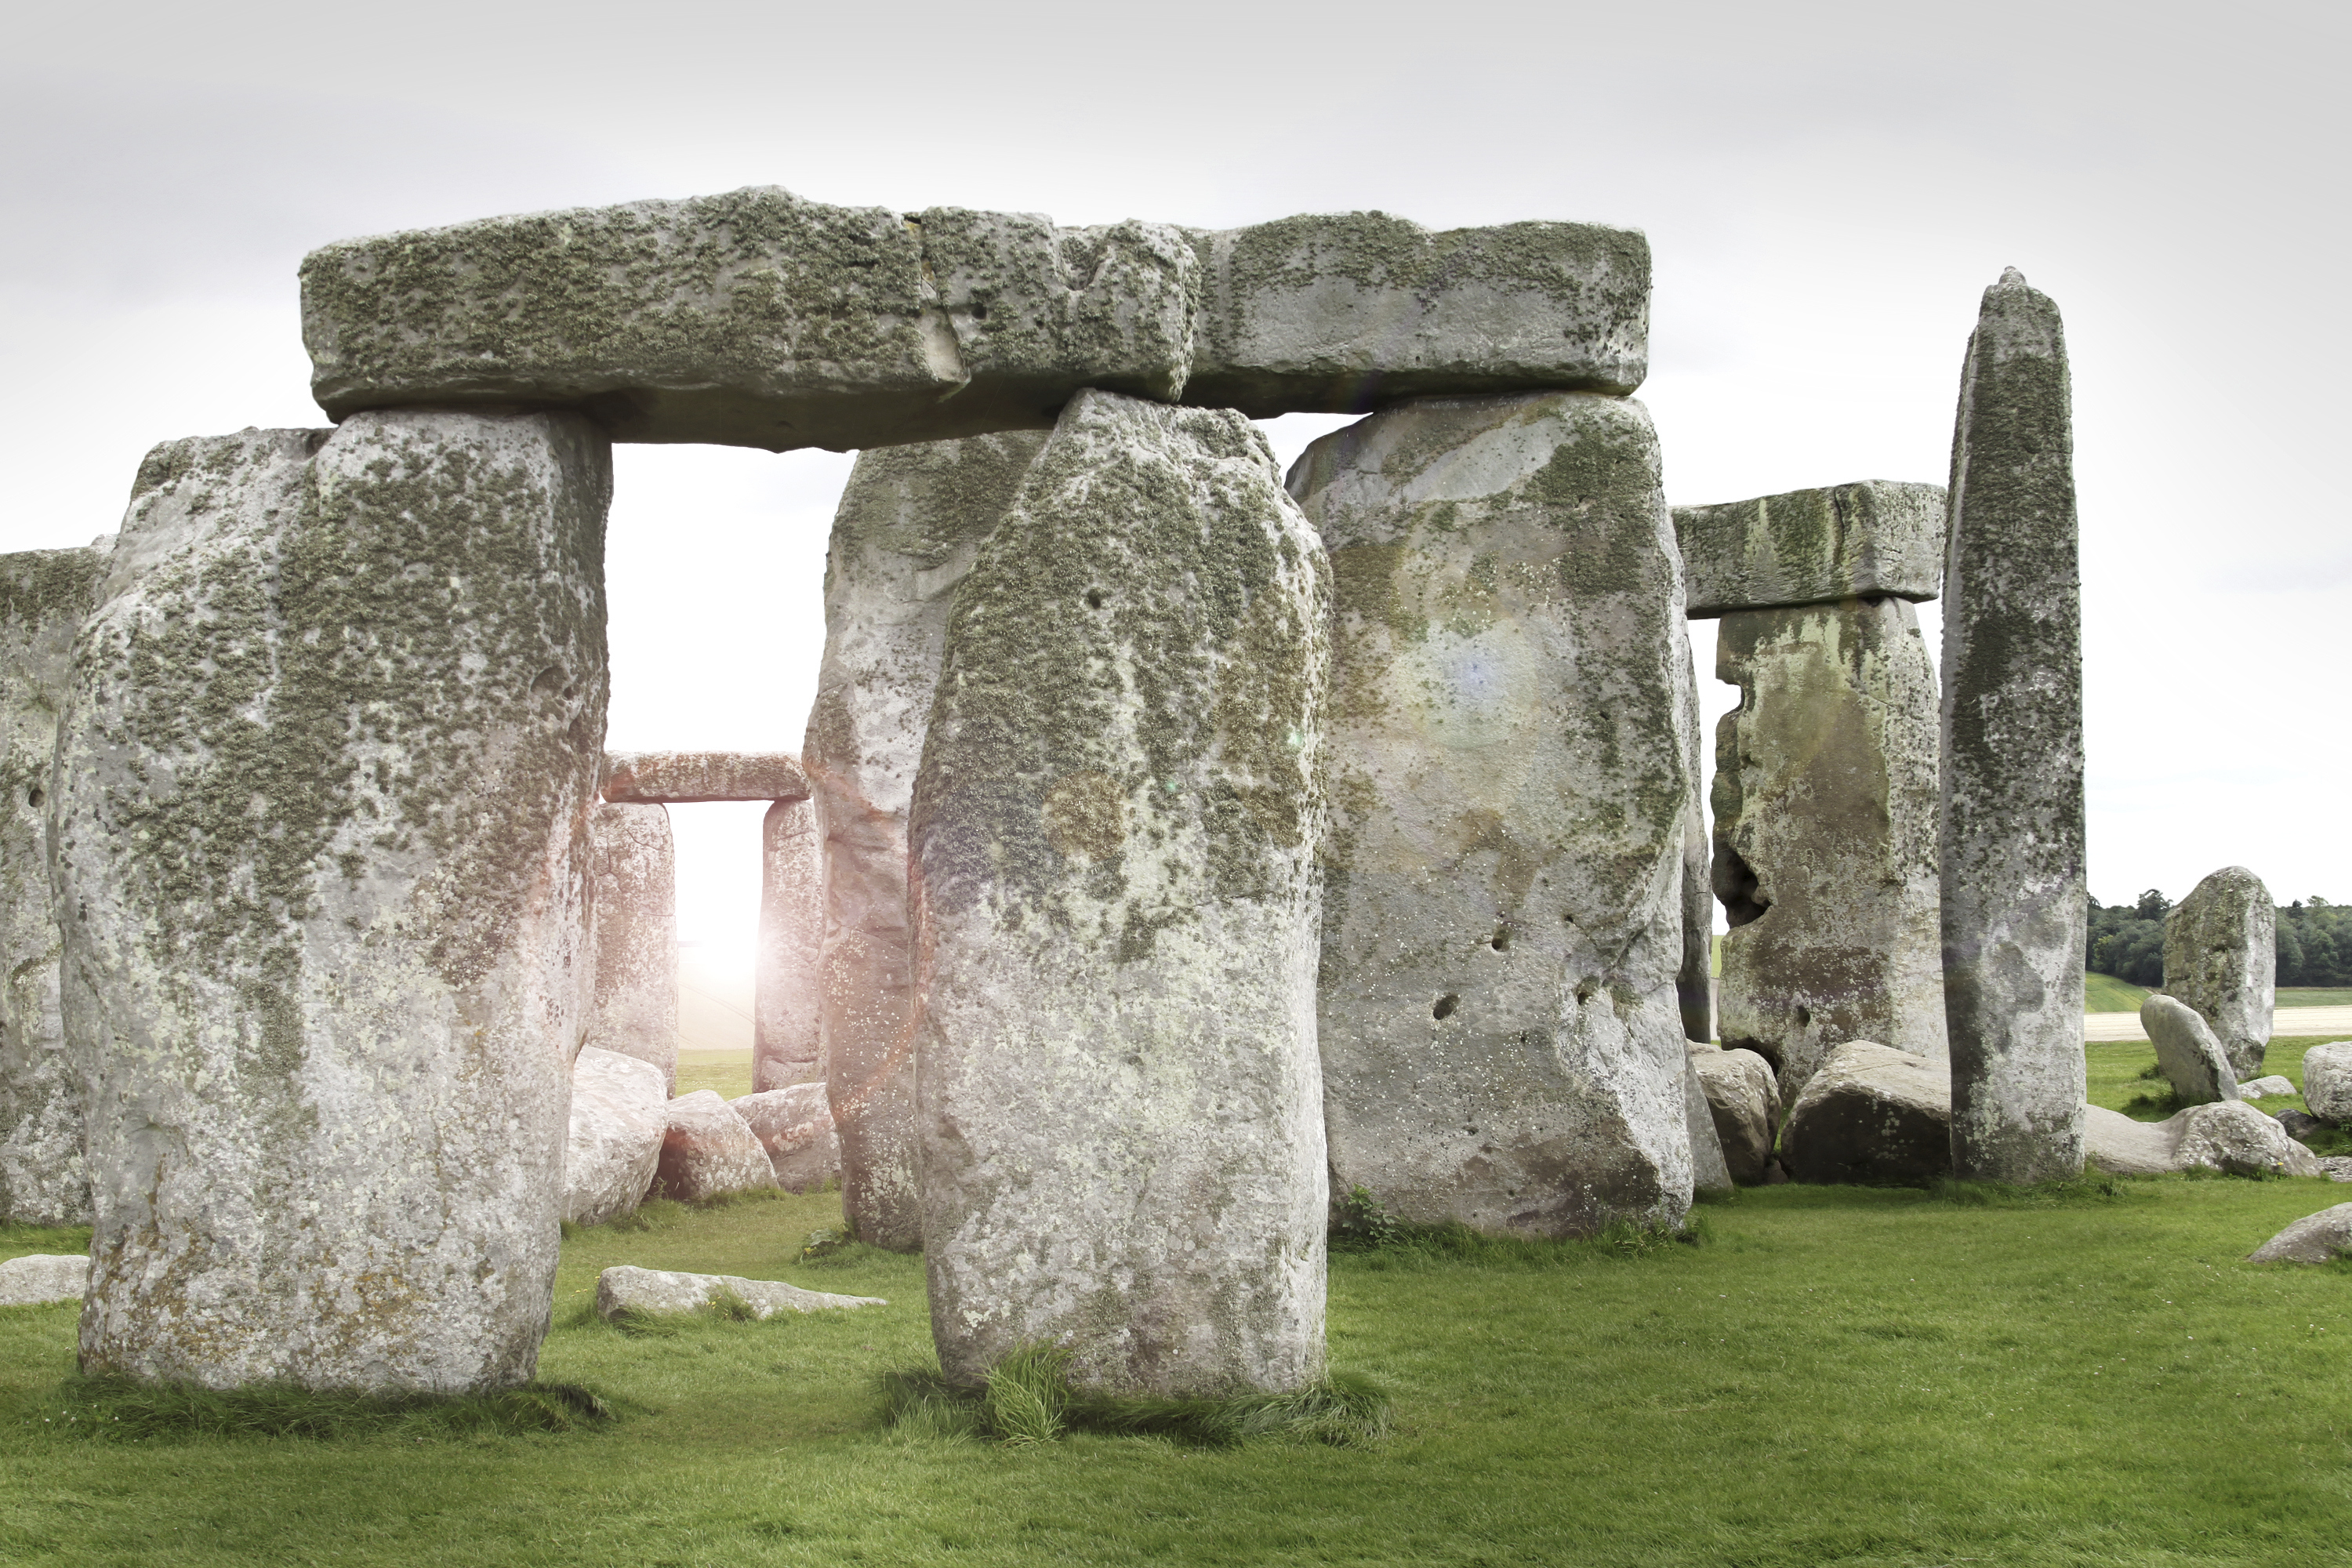 Stonehenge Plagued by Gridlock, but Britain Has a $2.4 B Solution